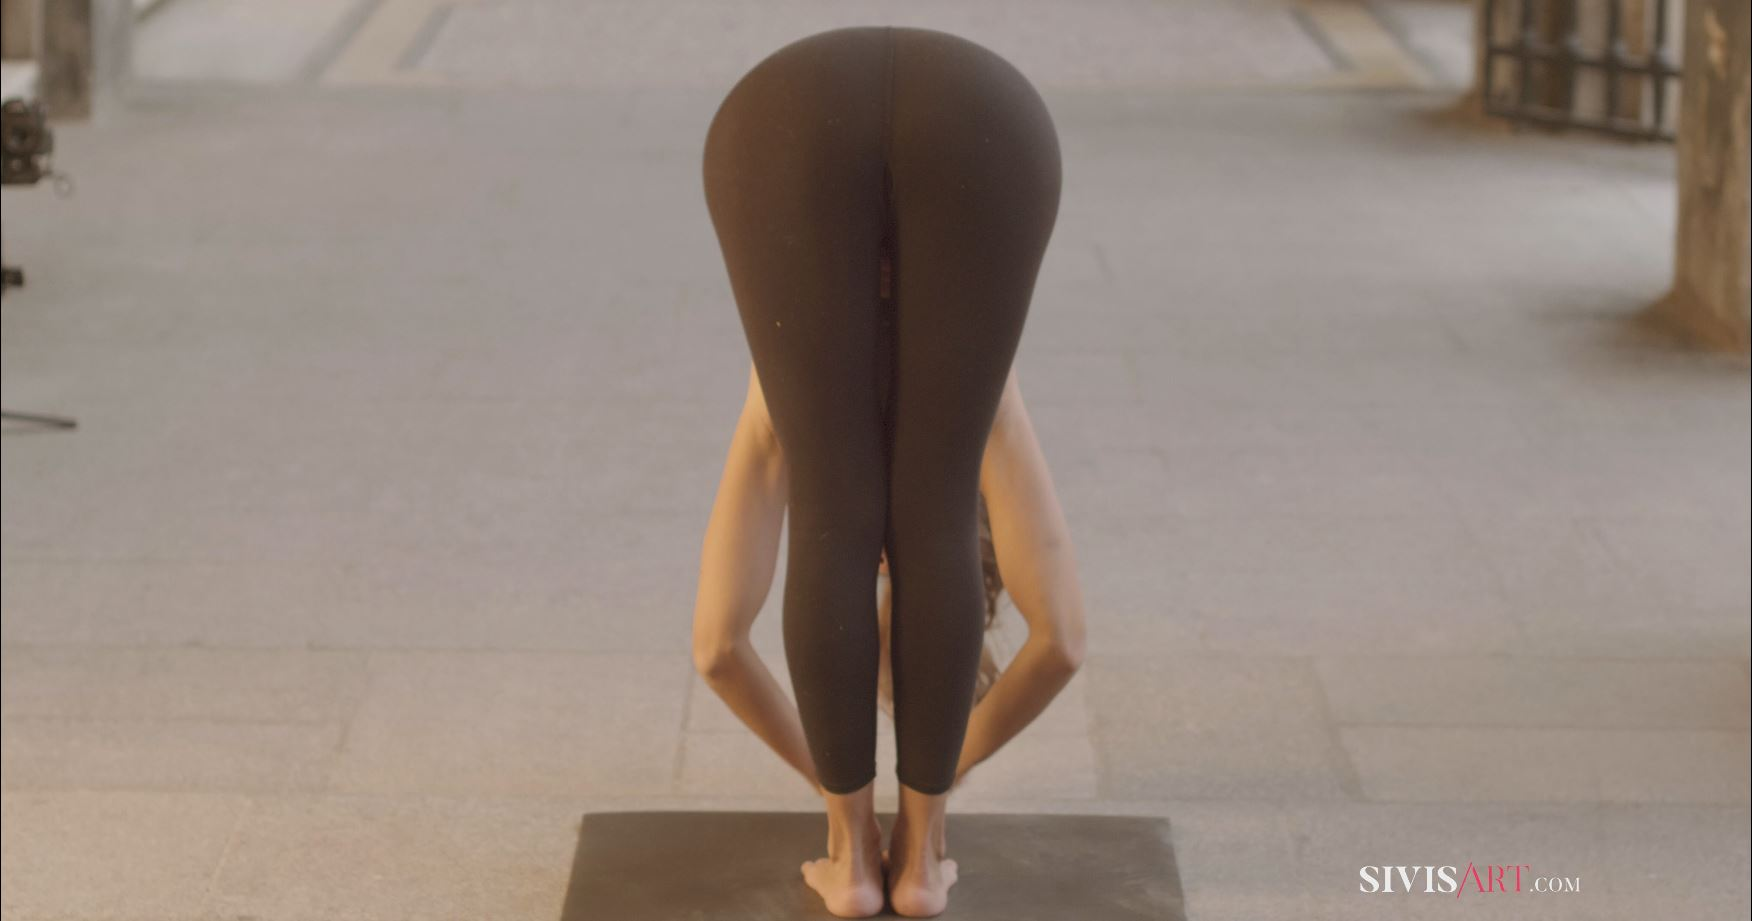 Sivis'art Videomaker presents Vinyasa Yoga